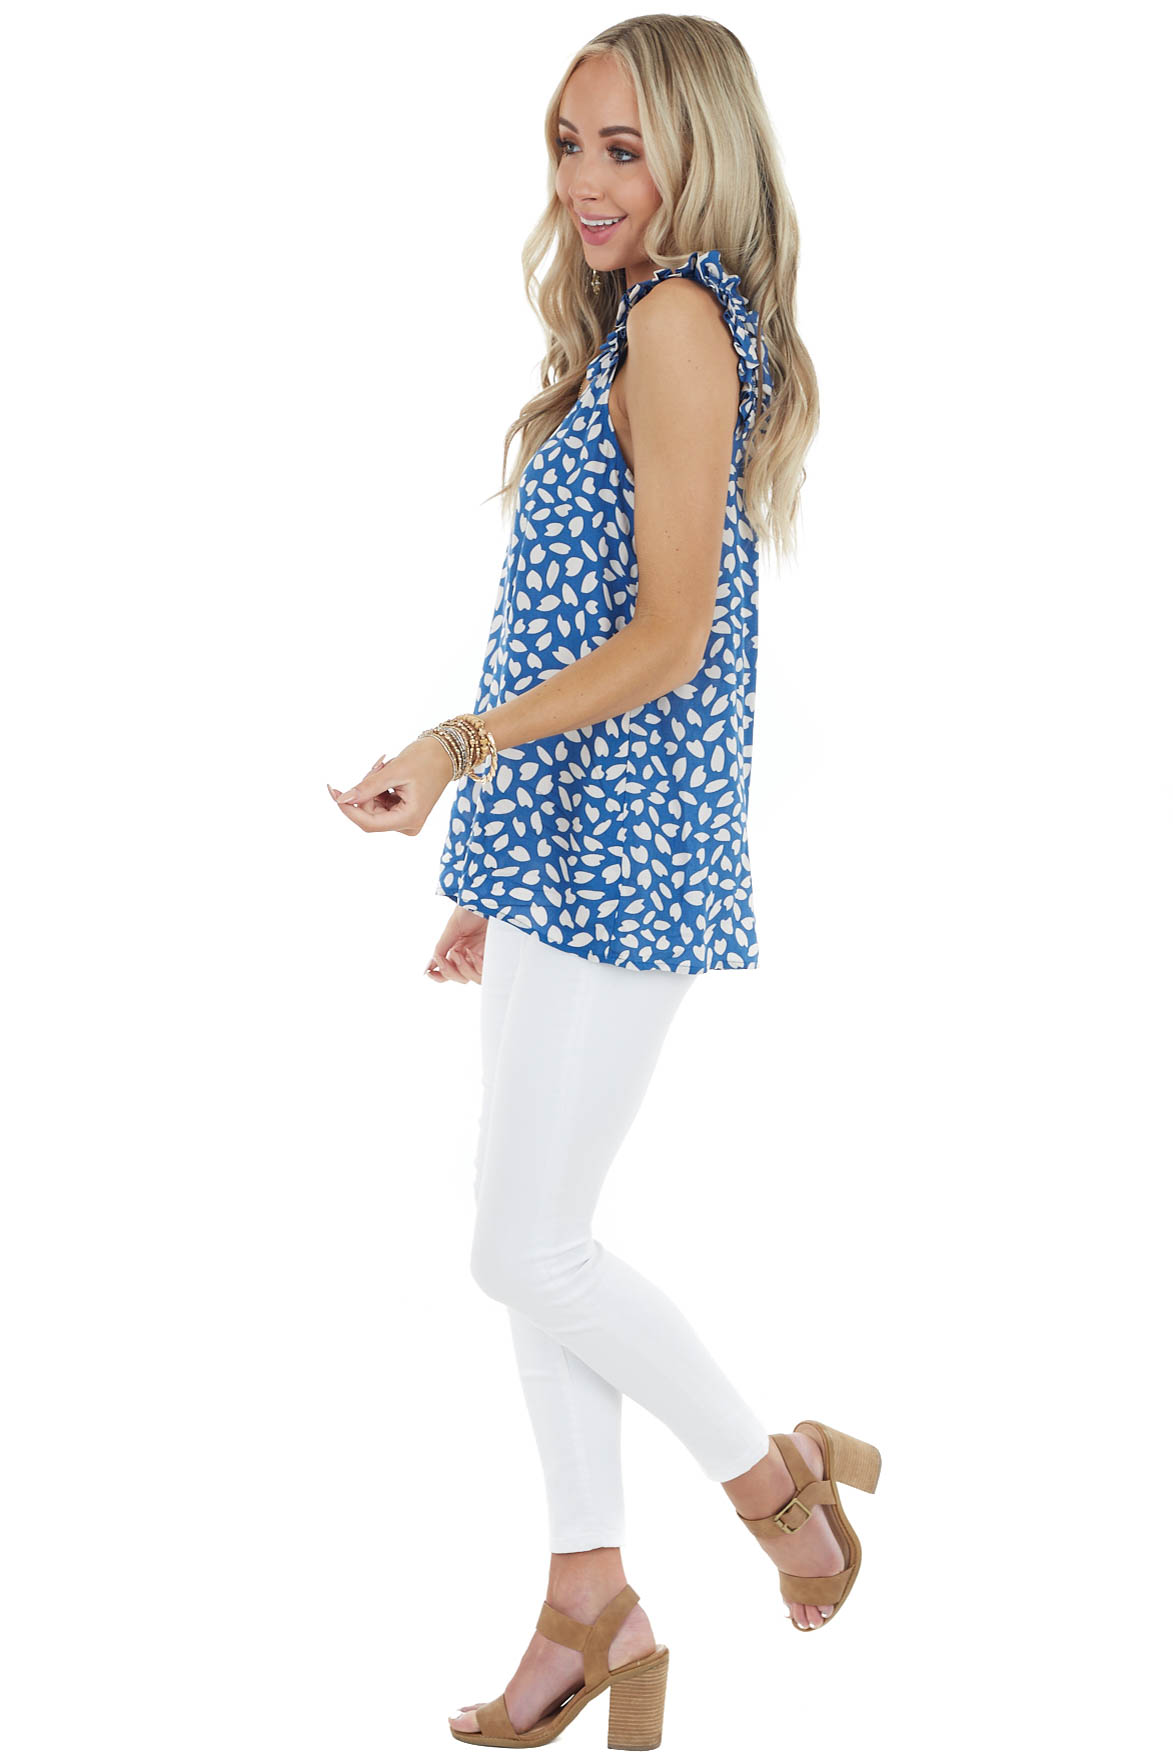 Ocean and Cream Printed Sleeveless Tops with Ruffle Details